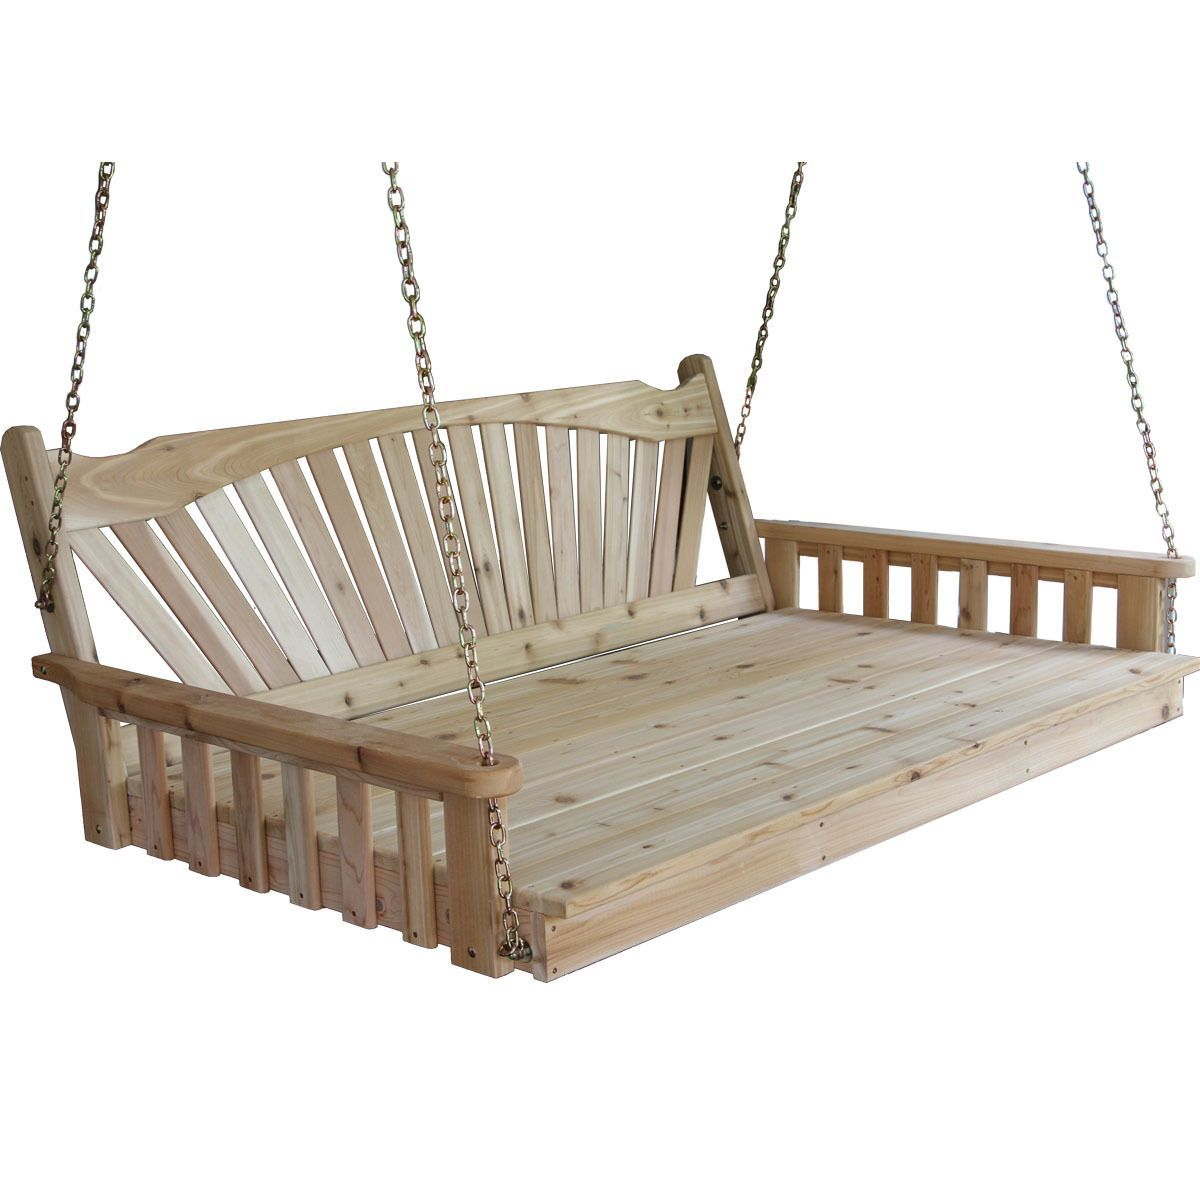 Pine fanback english swing bed swings outdoors and english